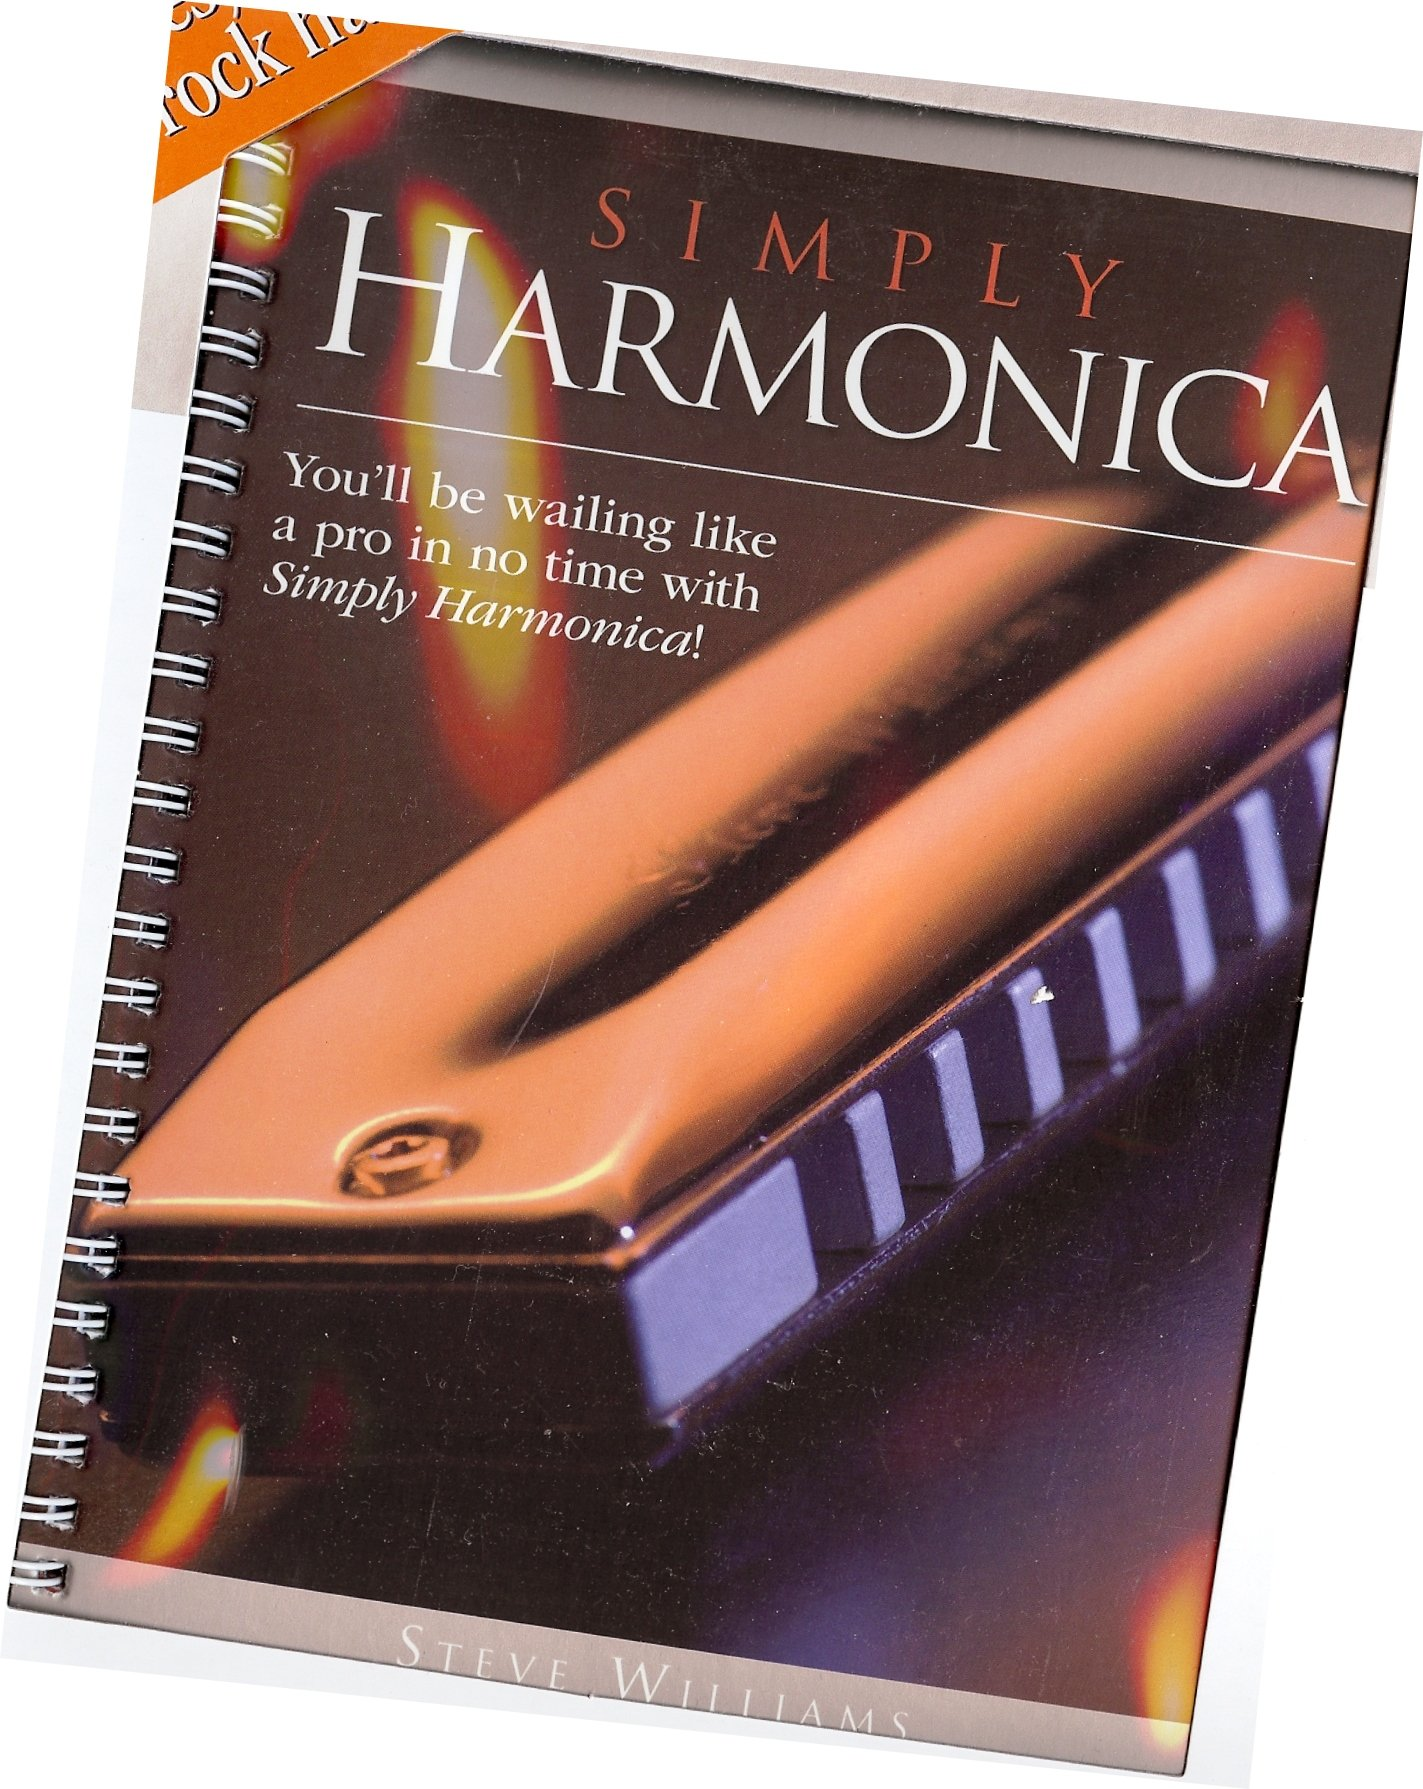 Simply Harmonica, Steve Williams